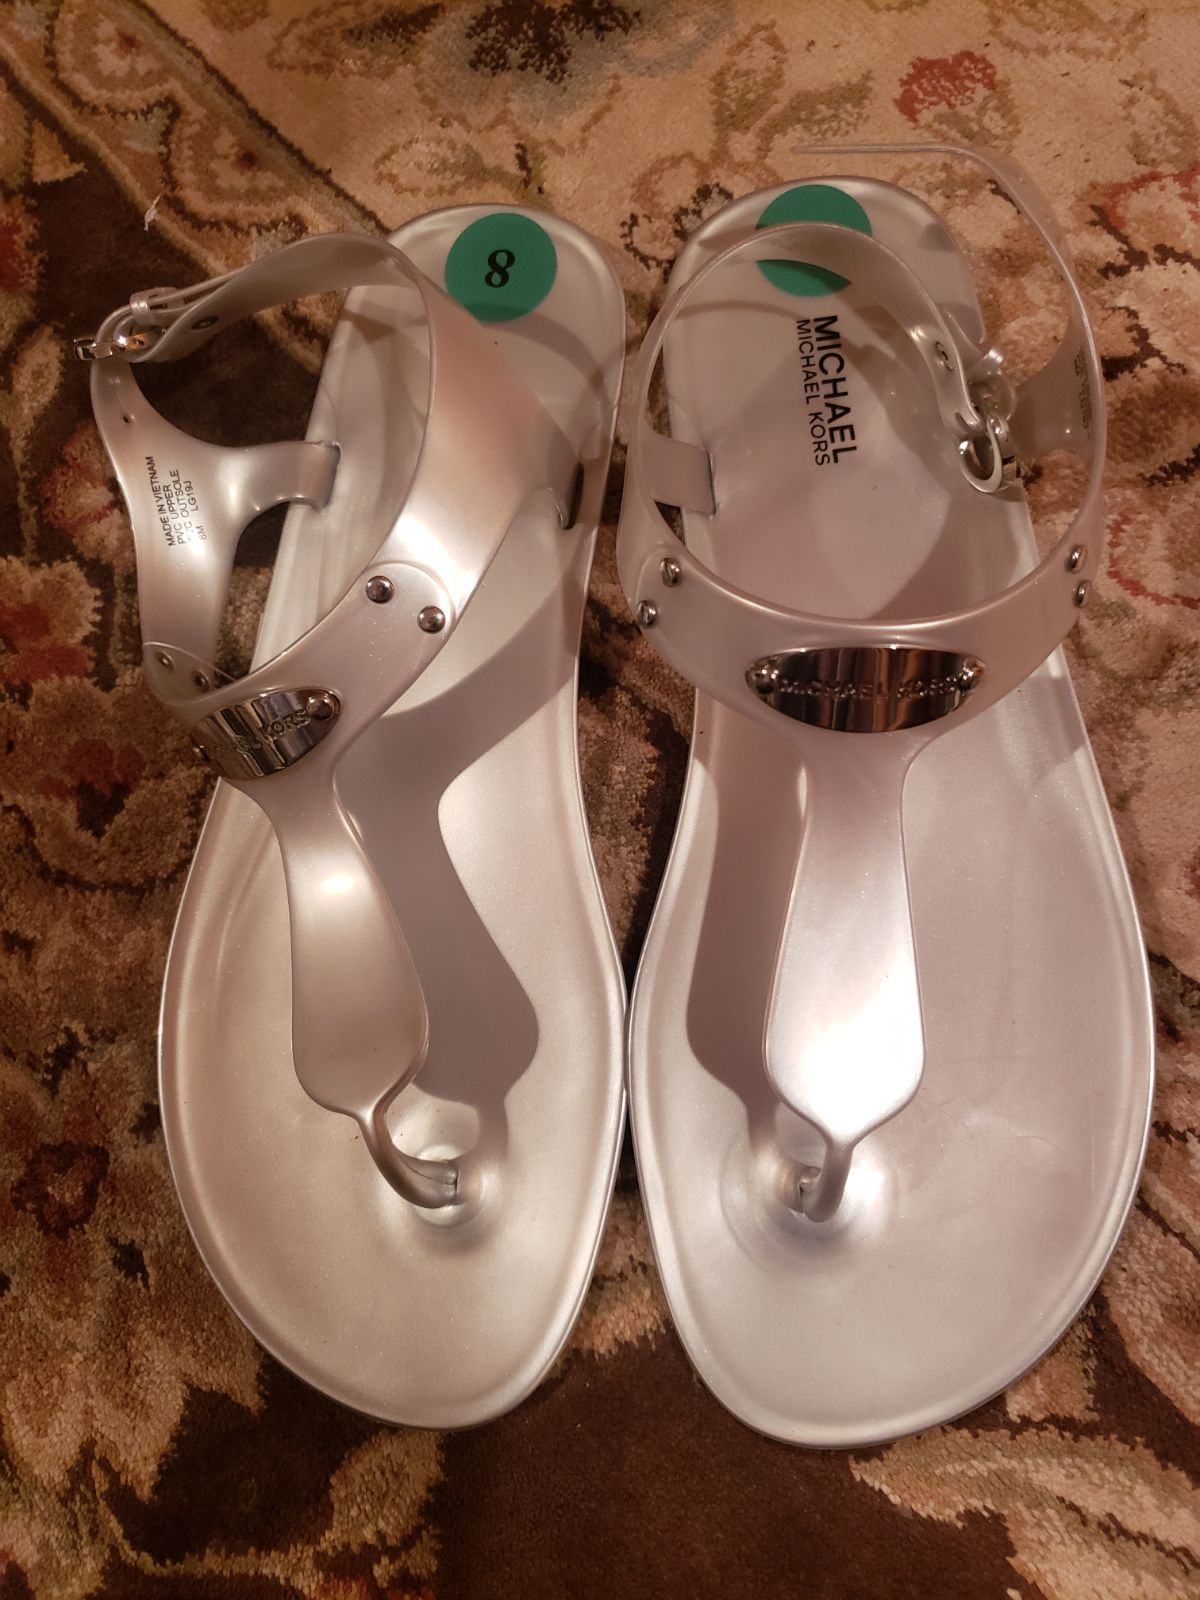 Michael Kors Silver Jelly Sandals Logo 8